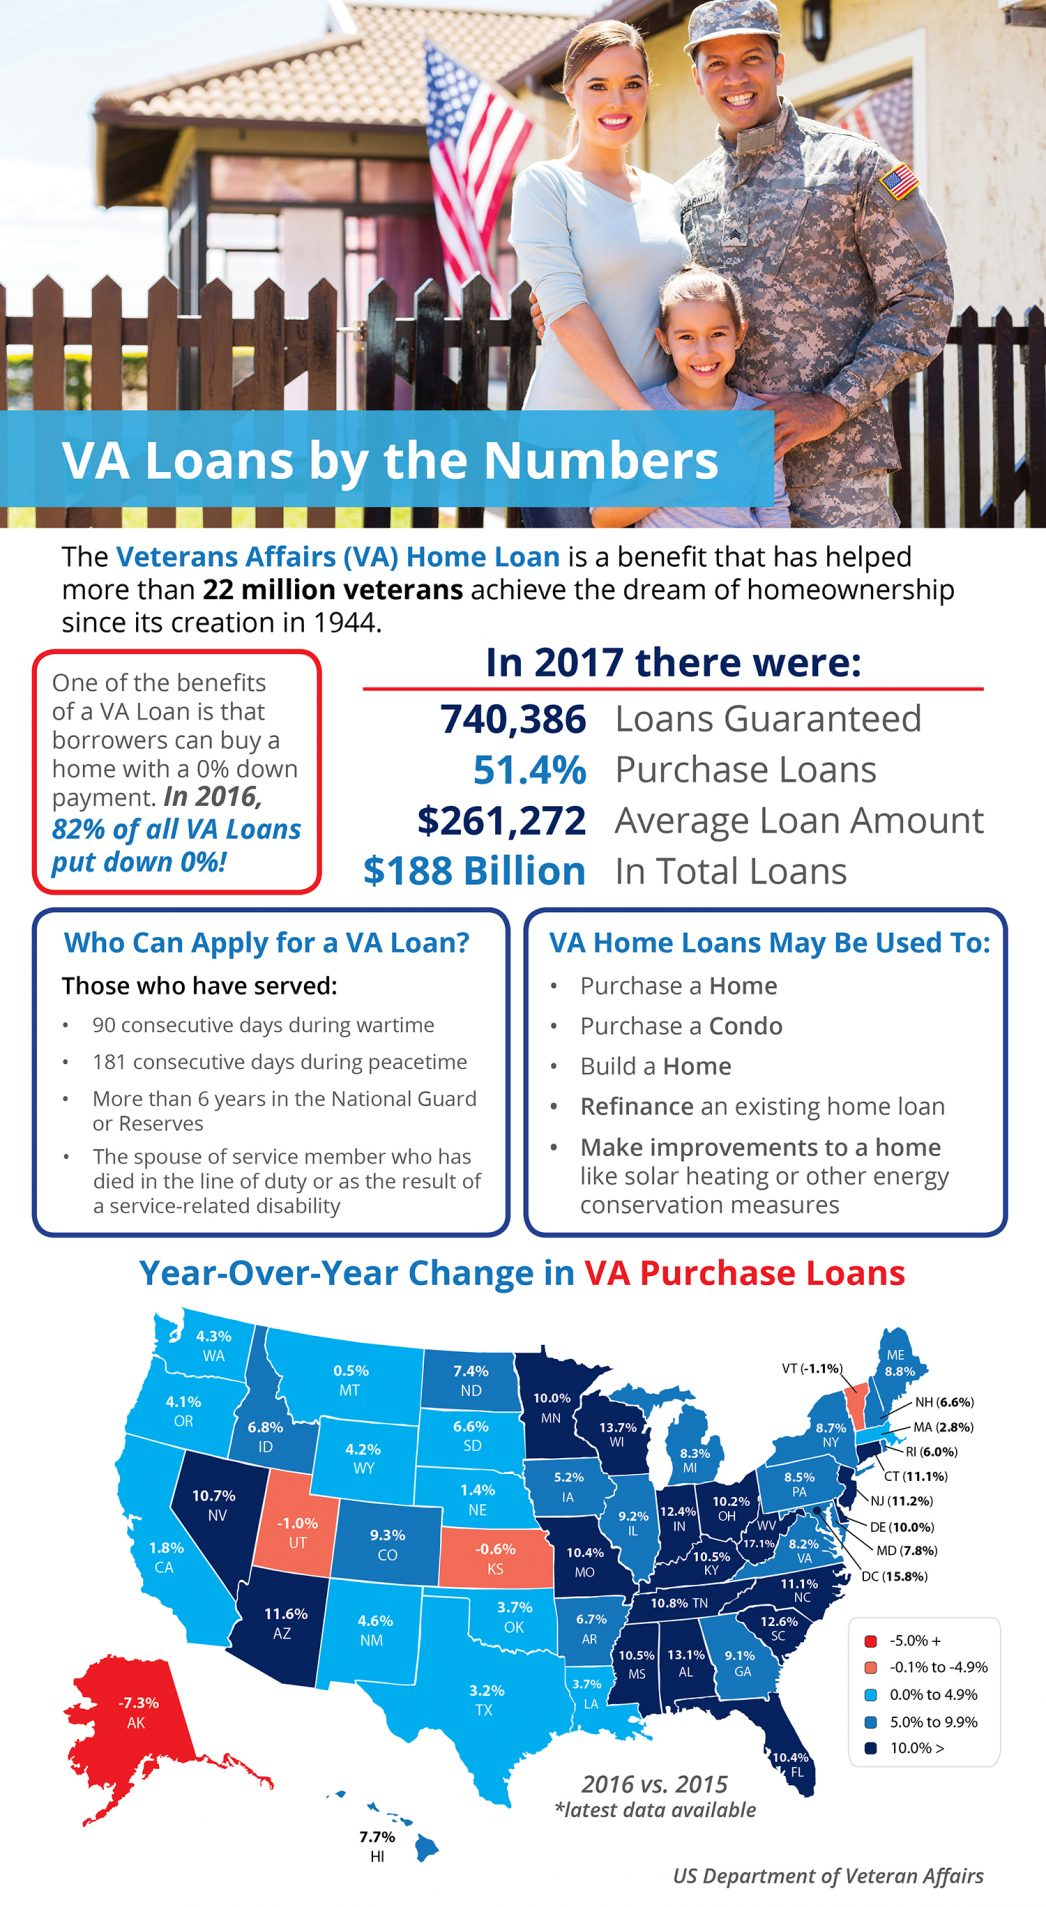 VA Loans by the Numbers [INFOGRAPHIC]   MyKCM